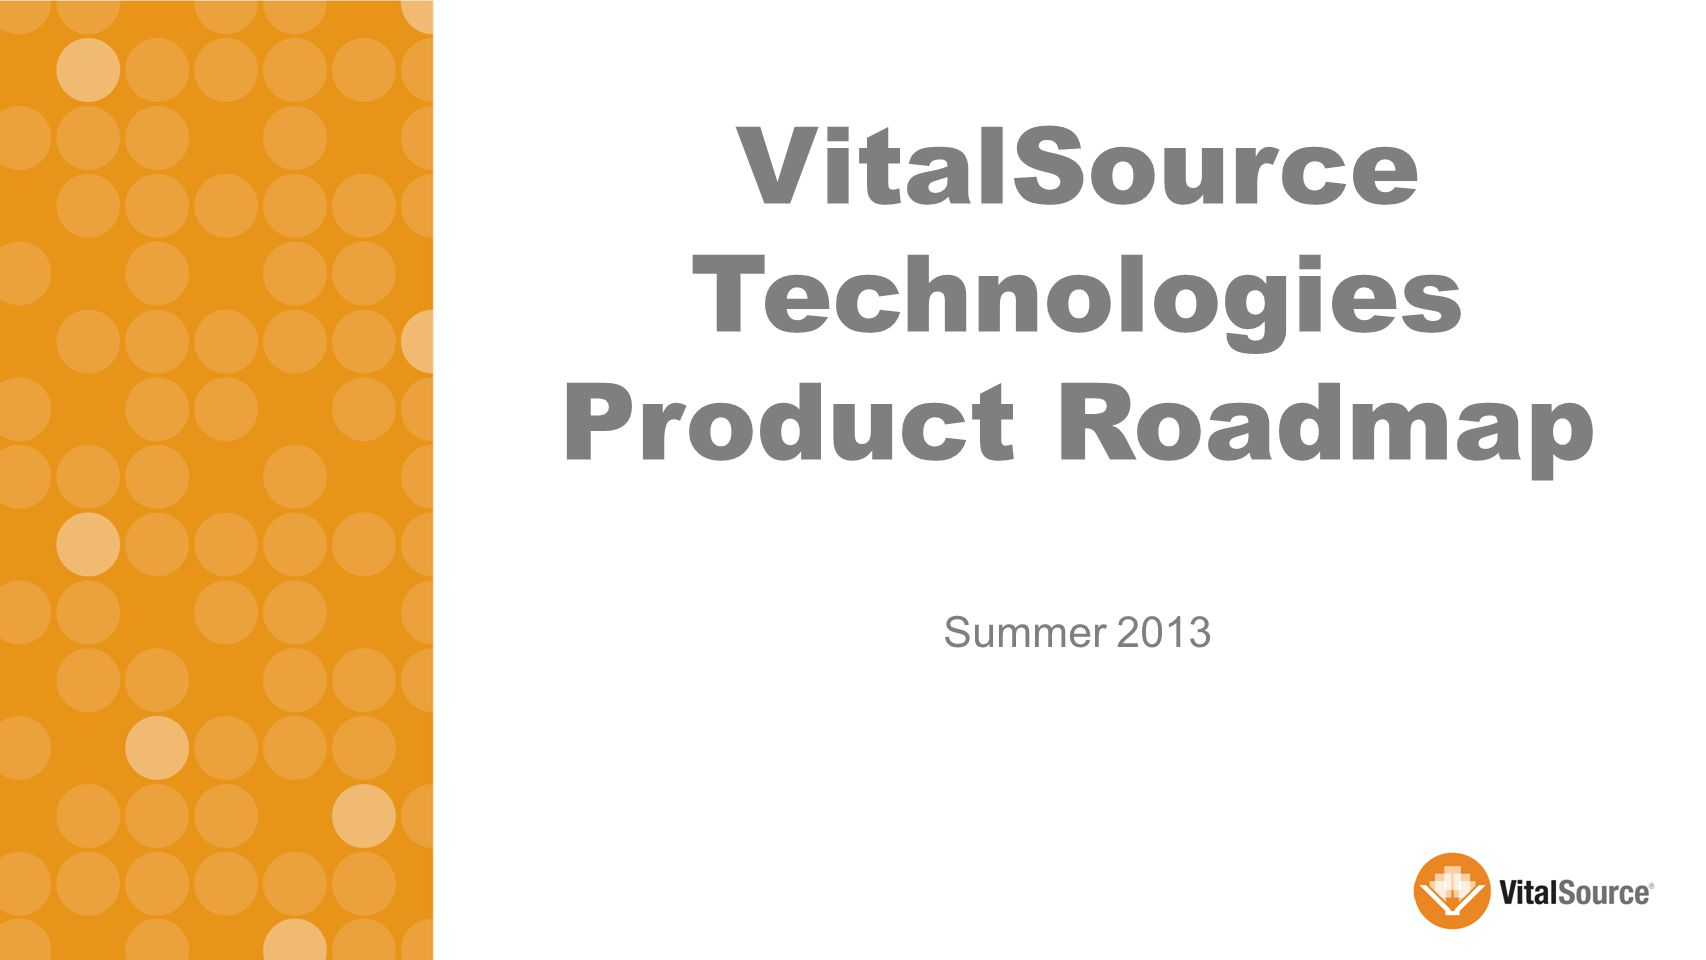 Products can be used anywhere, but they can only be activated in the intended territory You control the point of sale Product activation is controlled by the VitalSource license server VitalSource Territory Activation Control (TAC) VitalSource has the answer